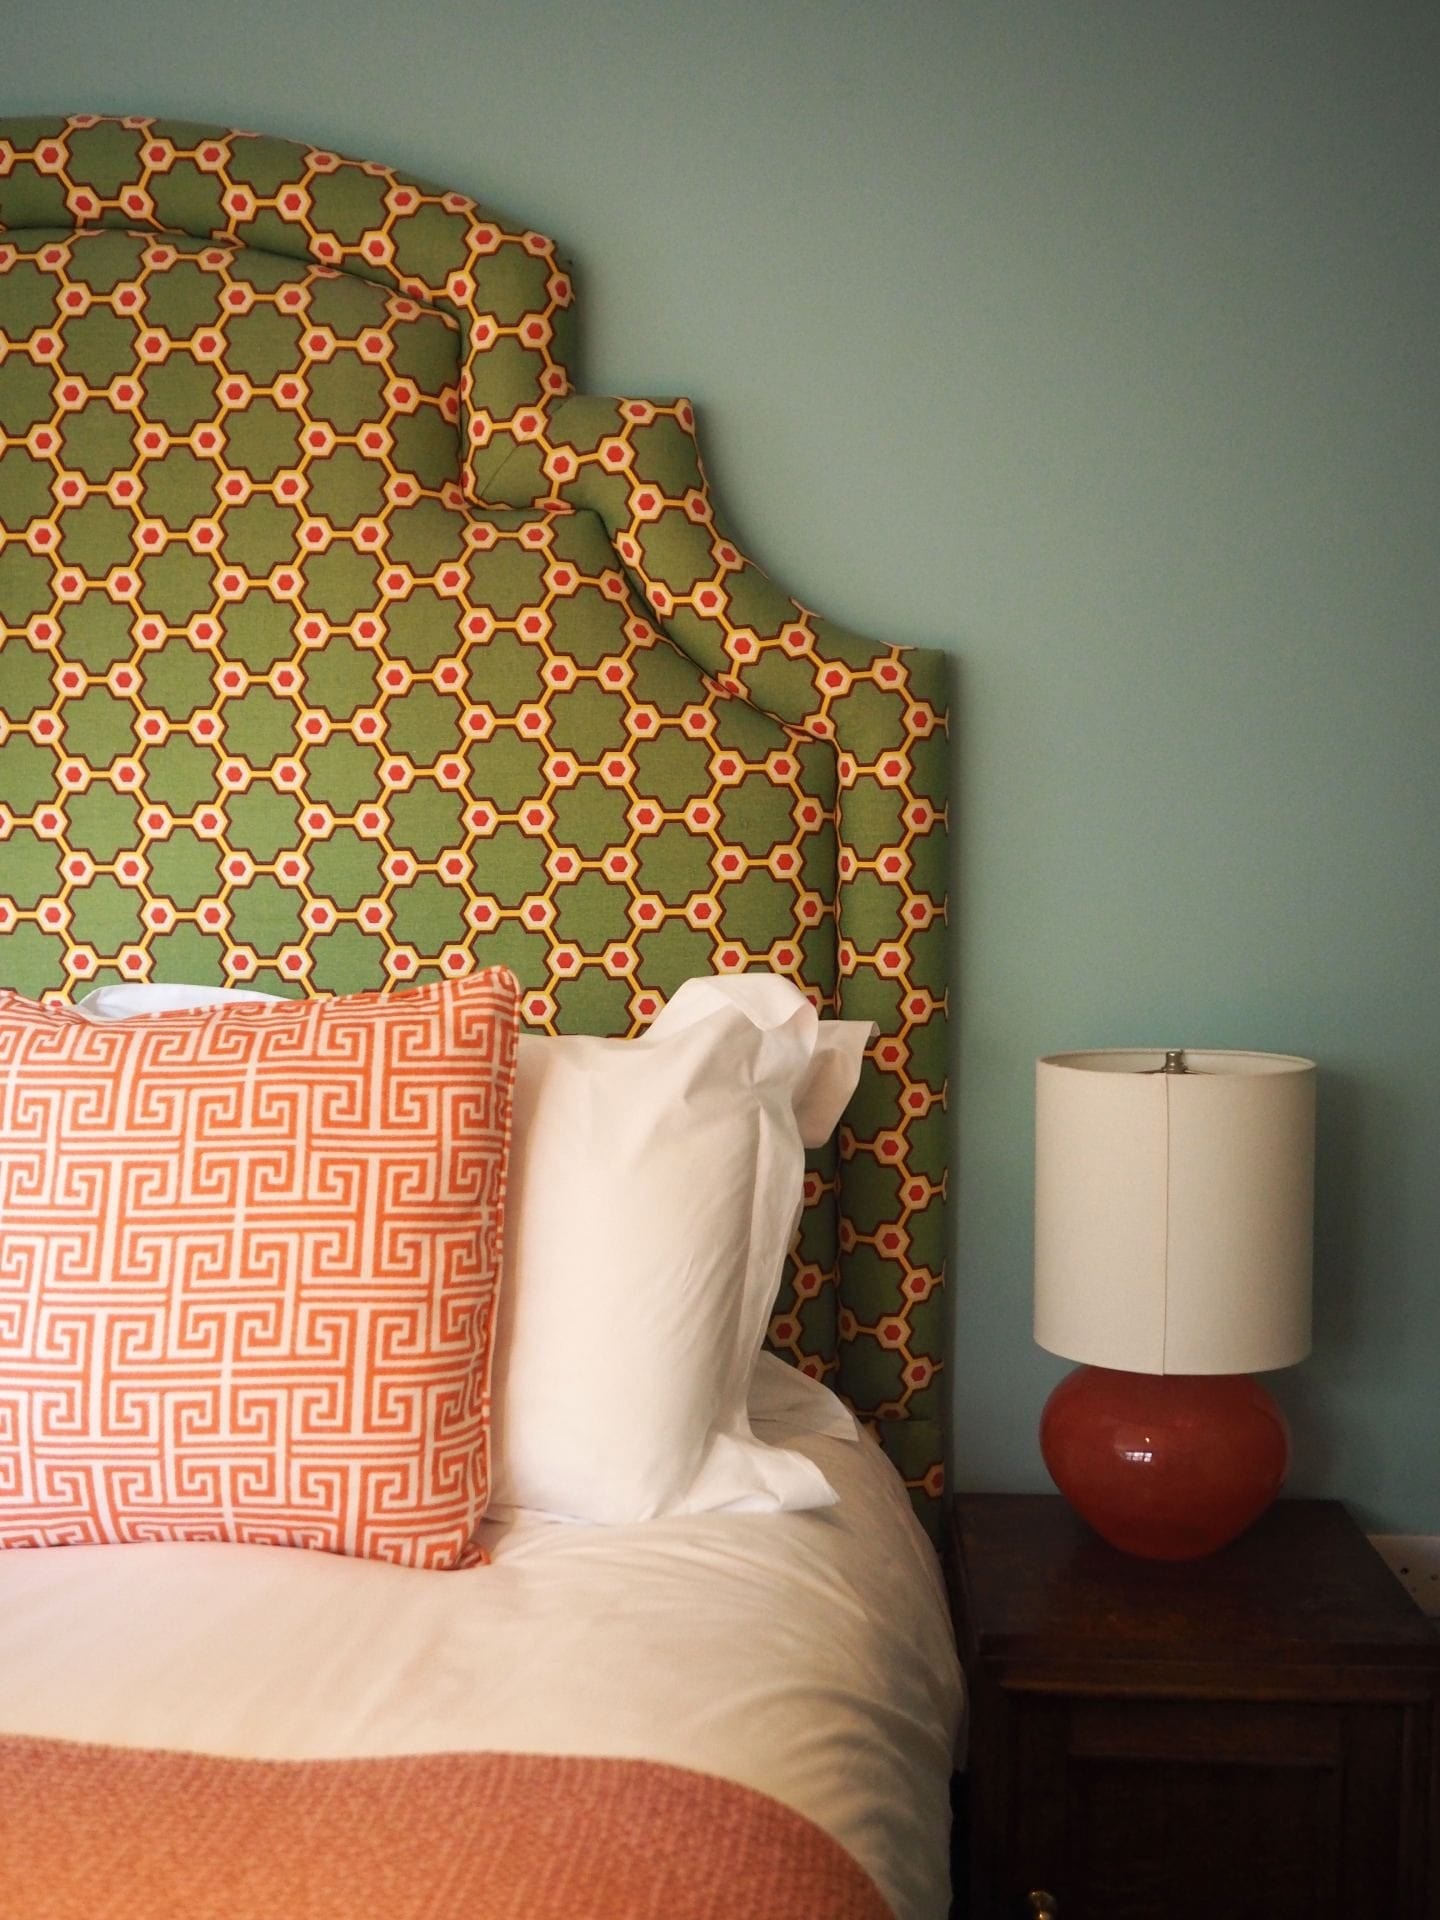 the rose deal kent decor interior design green and orange print headboard